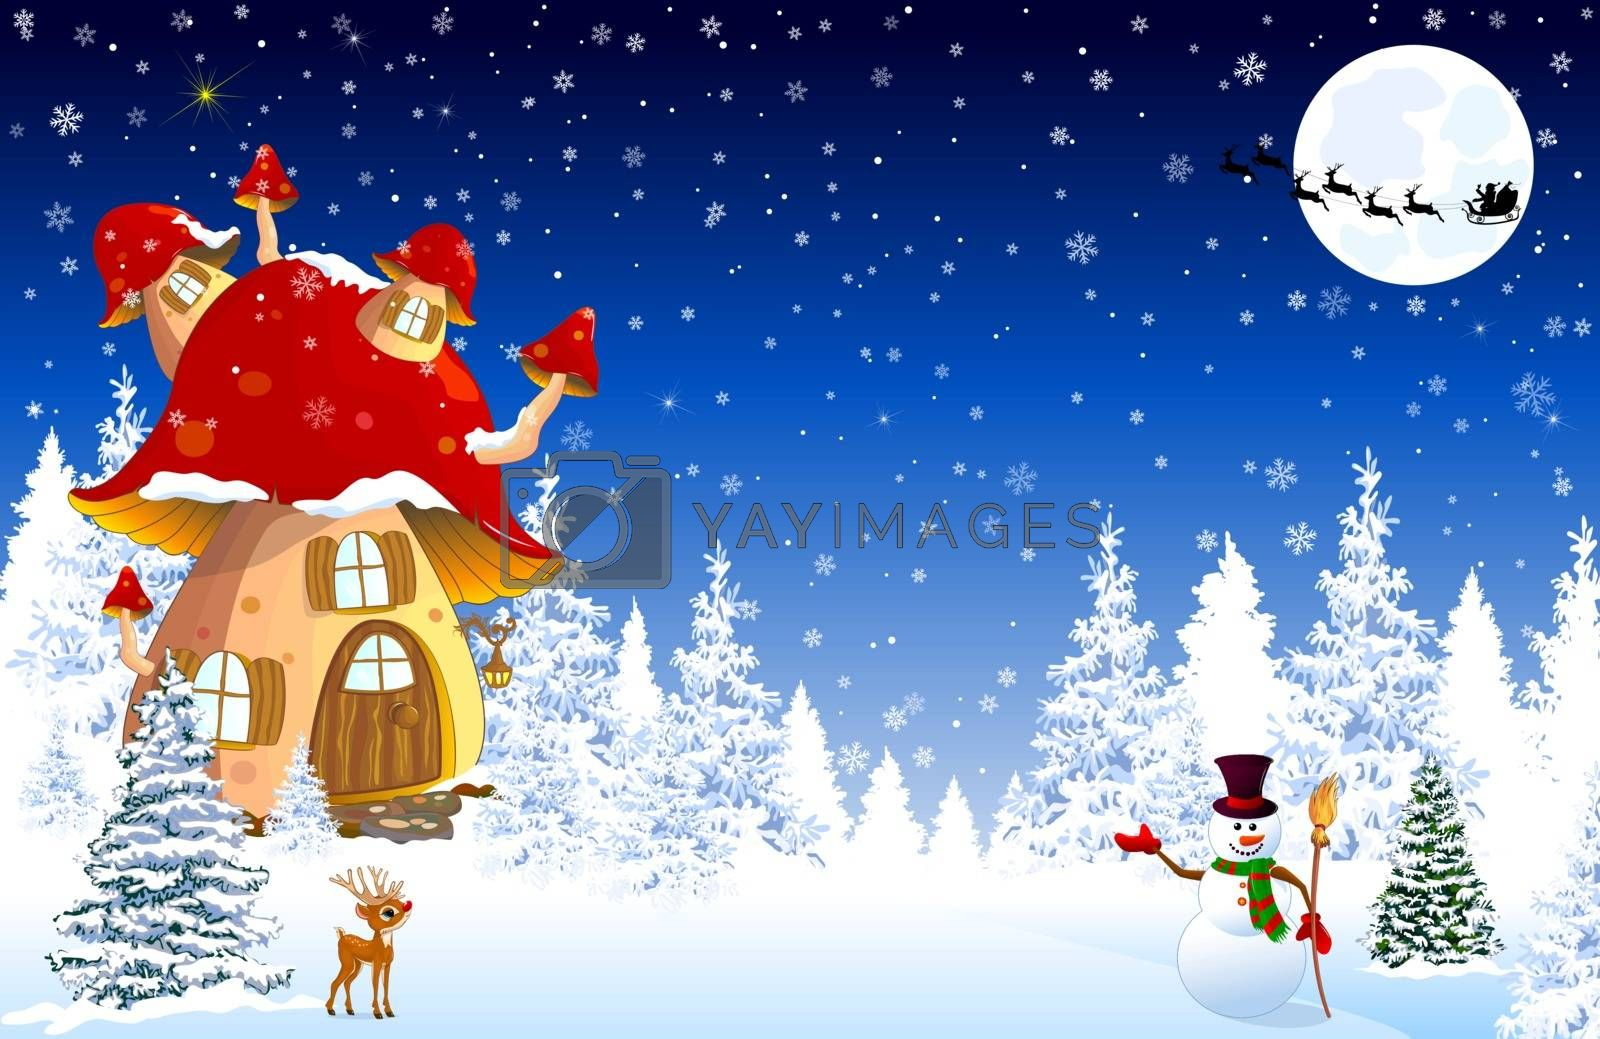 Cartoon mushroom house. Winter. Snow covered forest. Snowman welcomes. Little fawn. Winter night. Silhouette of Santa Slaus on a sleigh against the background of the night sky and the moon. Winter landscape with a mushroom house.